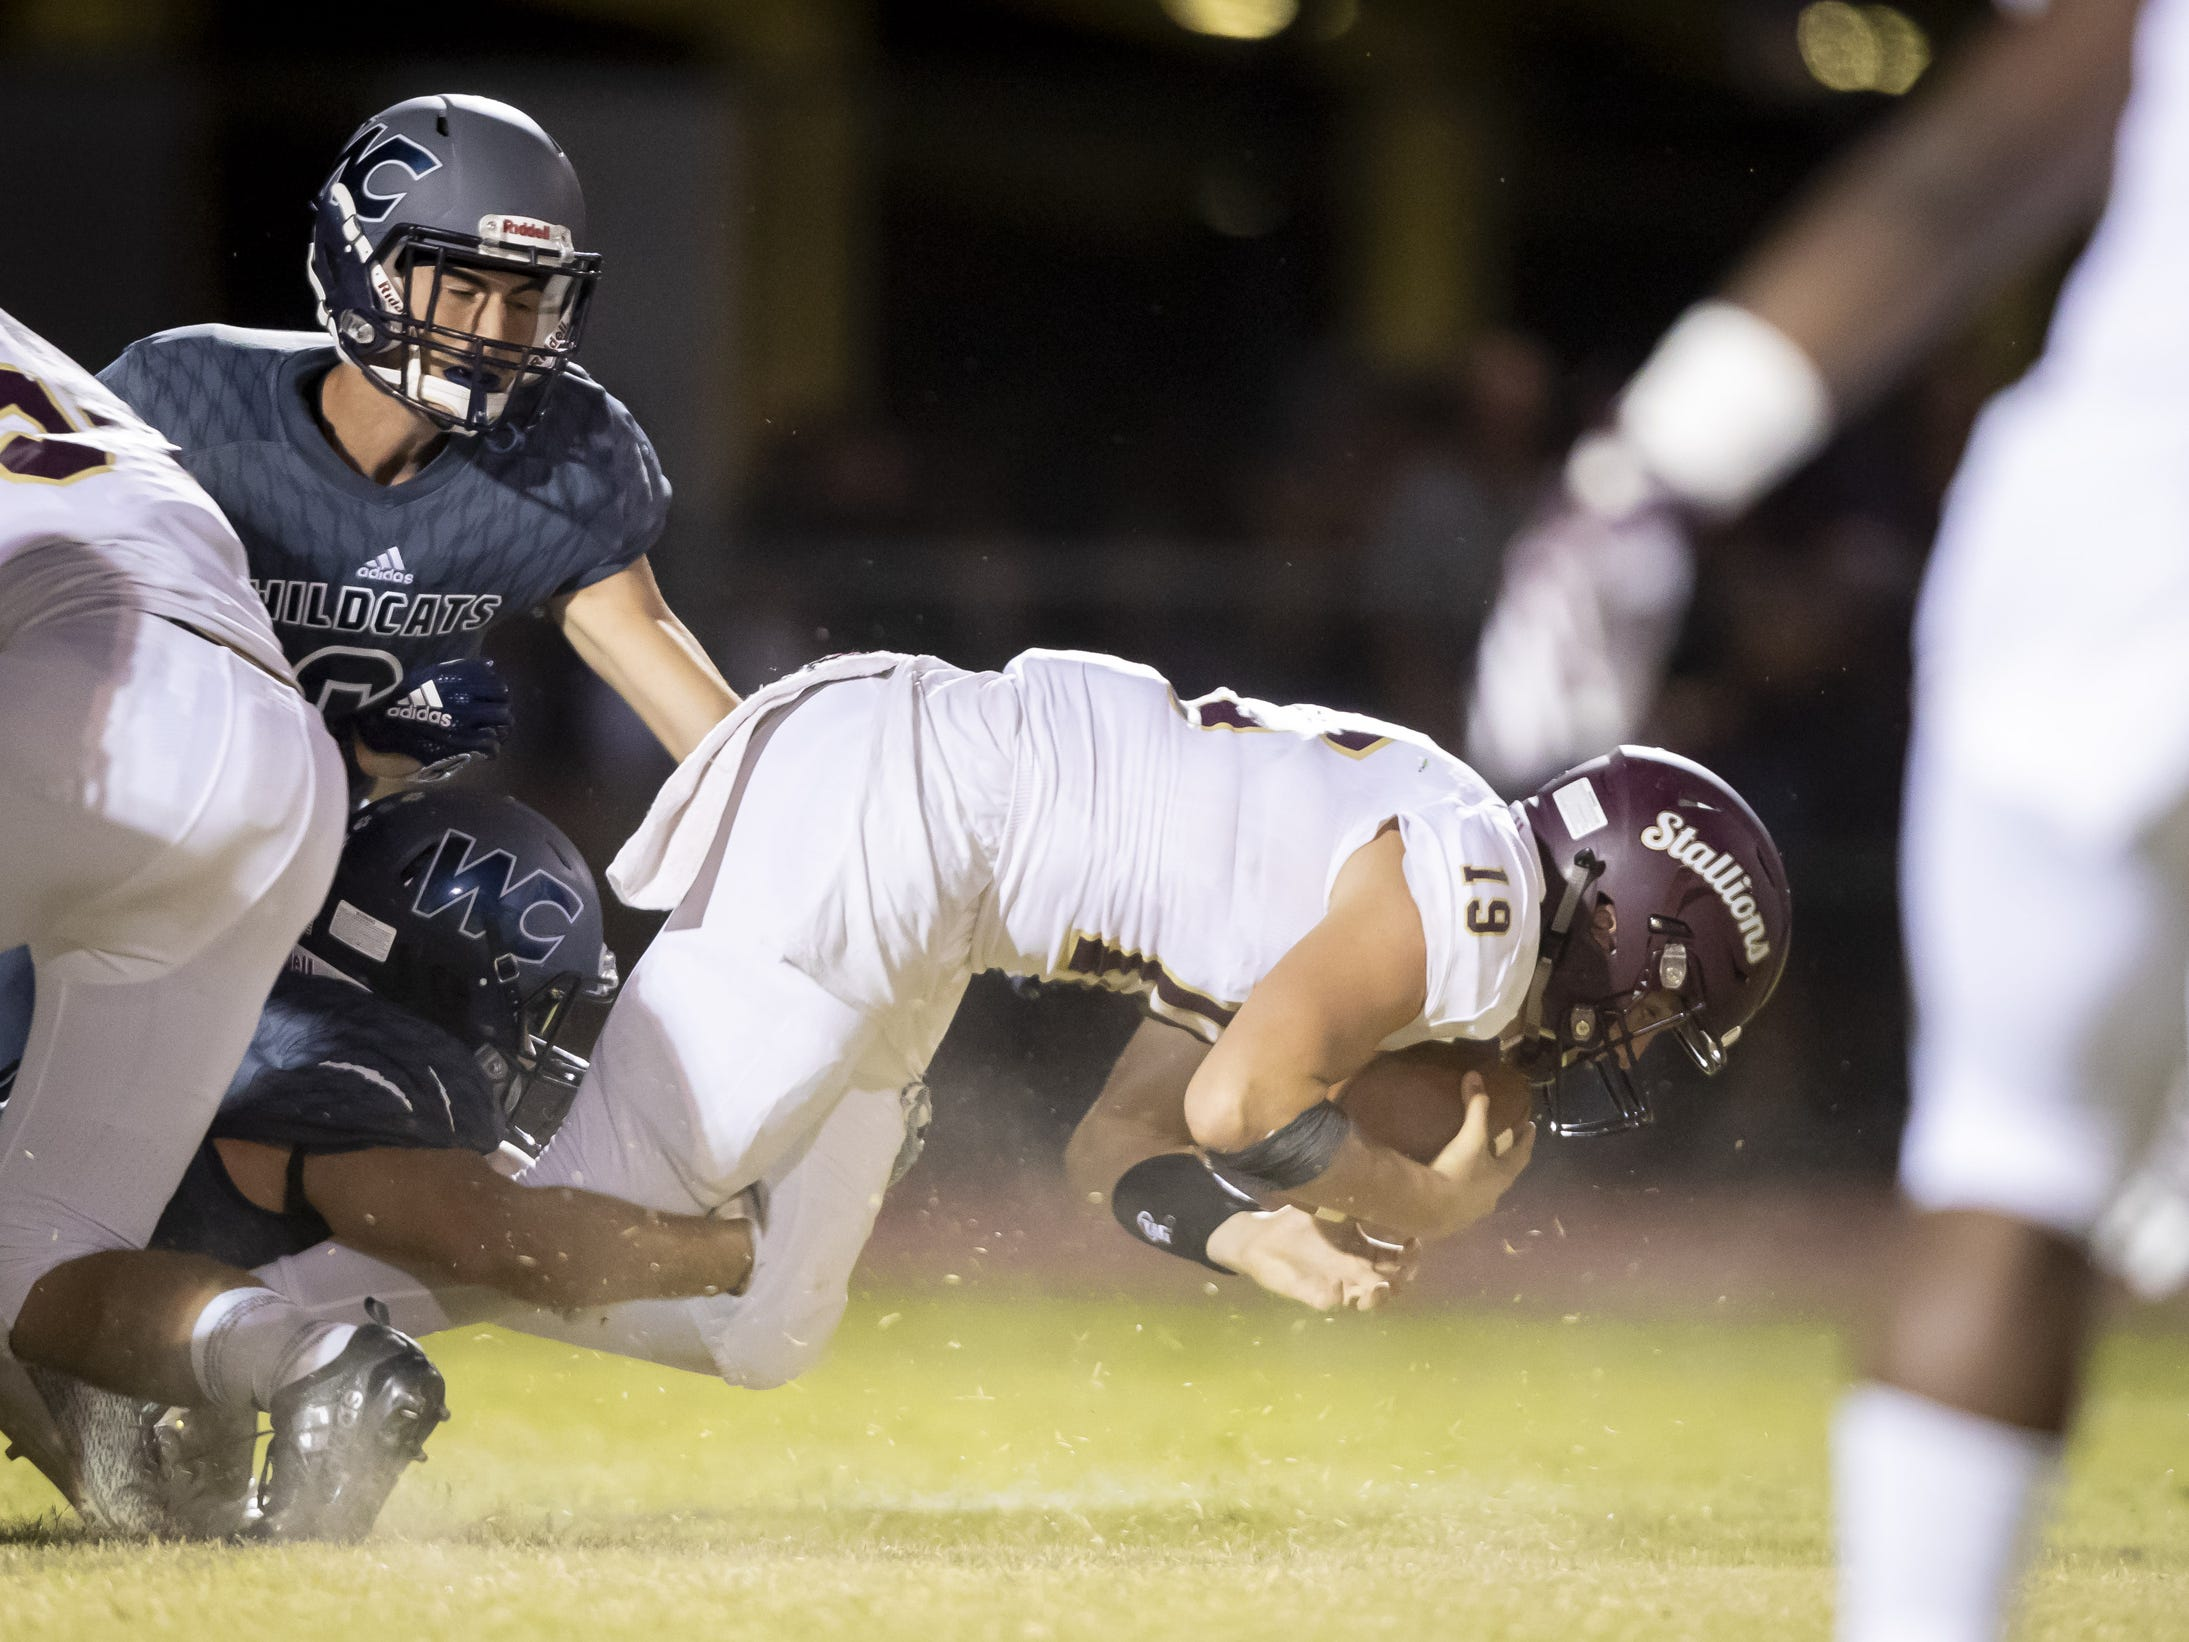 Junior quarterback Kaiden Lansford (19) of the Shadow Ridge Stallions is tackled by senior defensive tackle Jason Hickson (56) of the Willow Canyon Wildcats at Willow Canyon High School on Friday, September 7, 2018 in Surprise, Arizona. #azhsfb